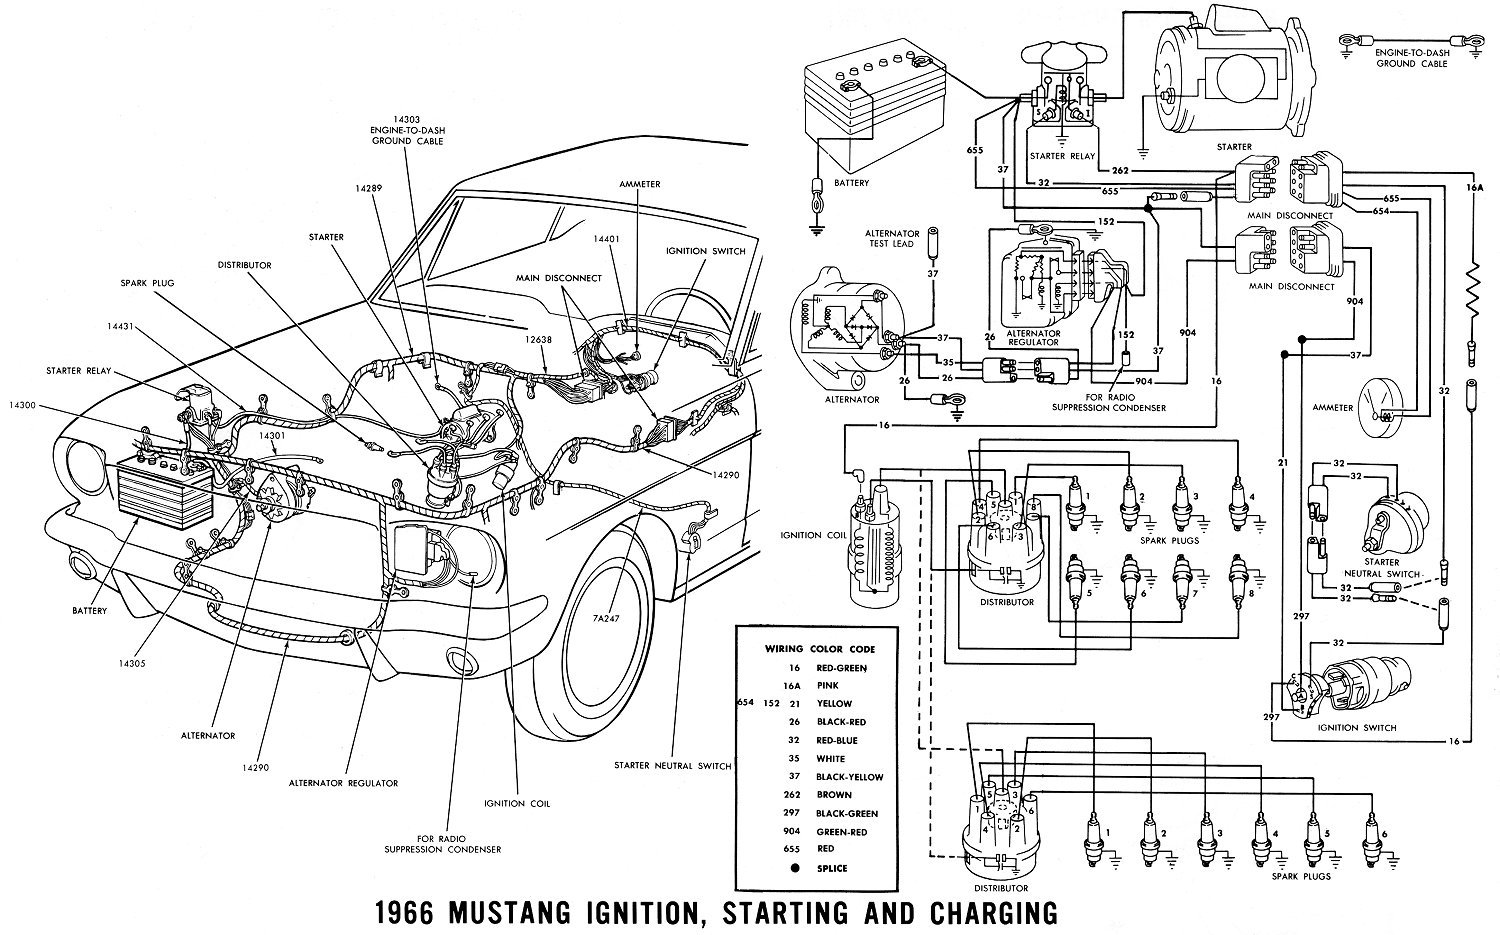 Honda 300 4x4 Wiring Diagram Simple Guide About Trx Atv 1991 1966 Mustang Ignition Switch What Pins Are 1999 Fourtrax